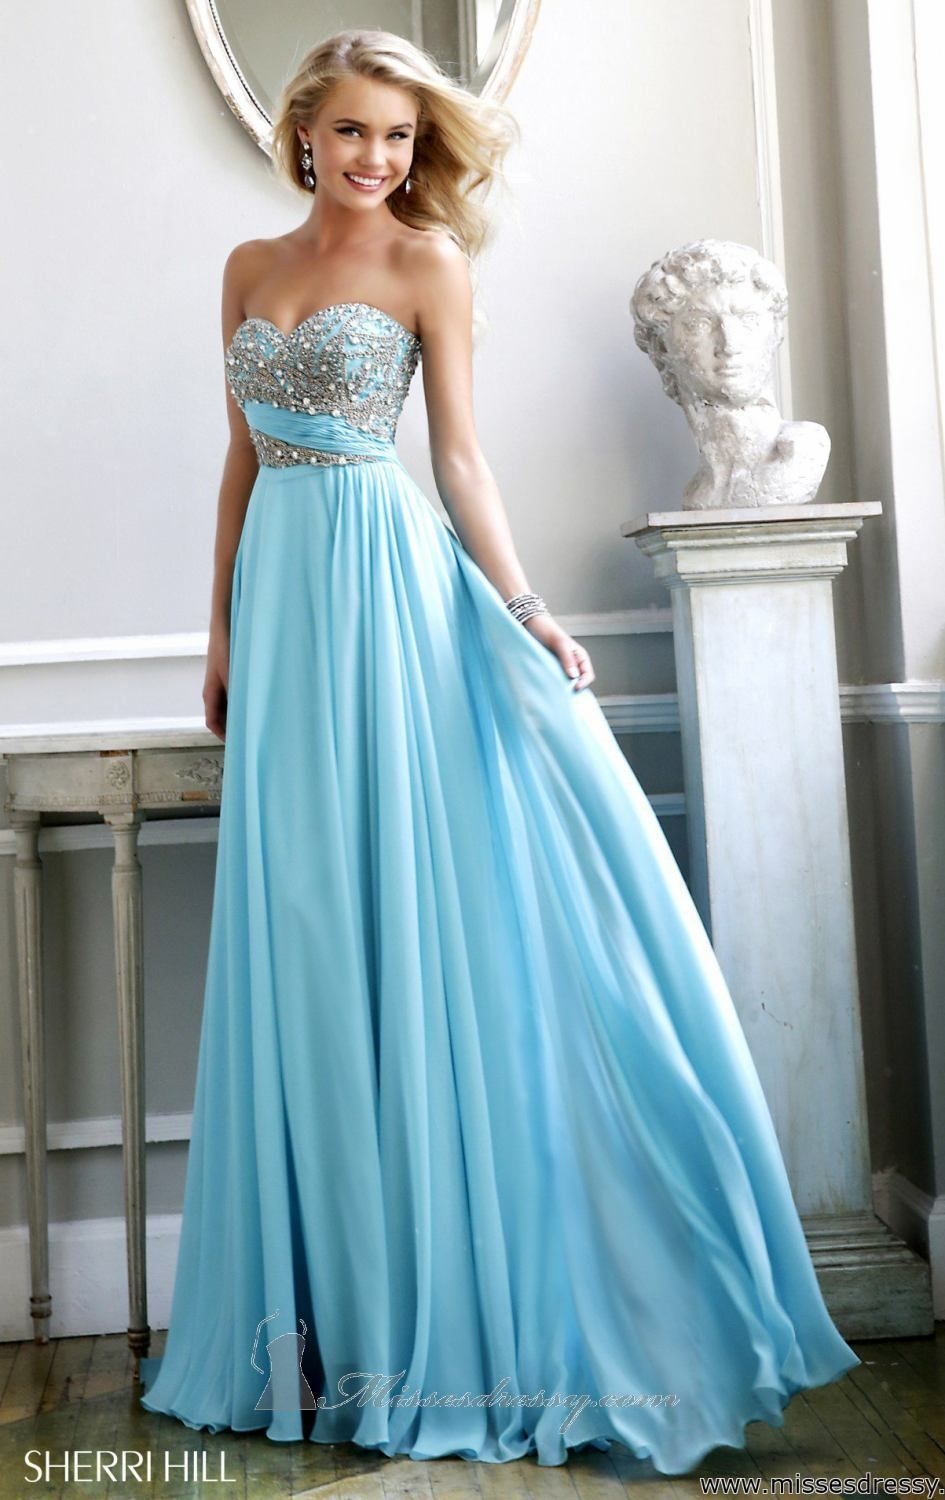 Sherri hill by sherri hill ucthis is beautifuli